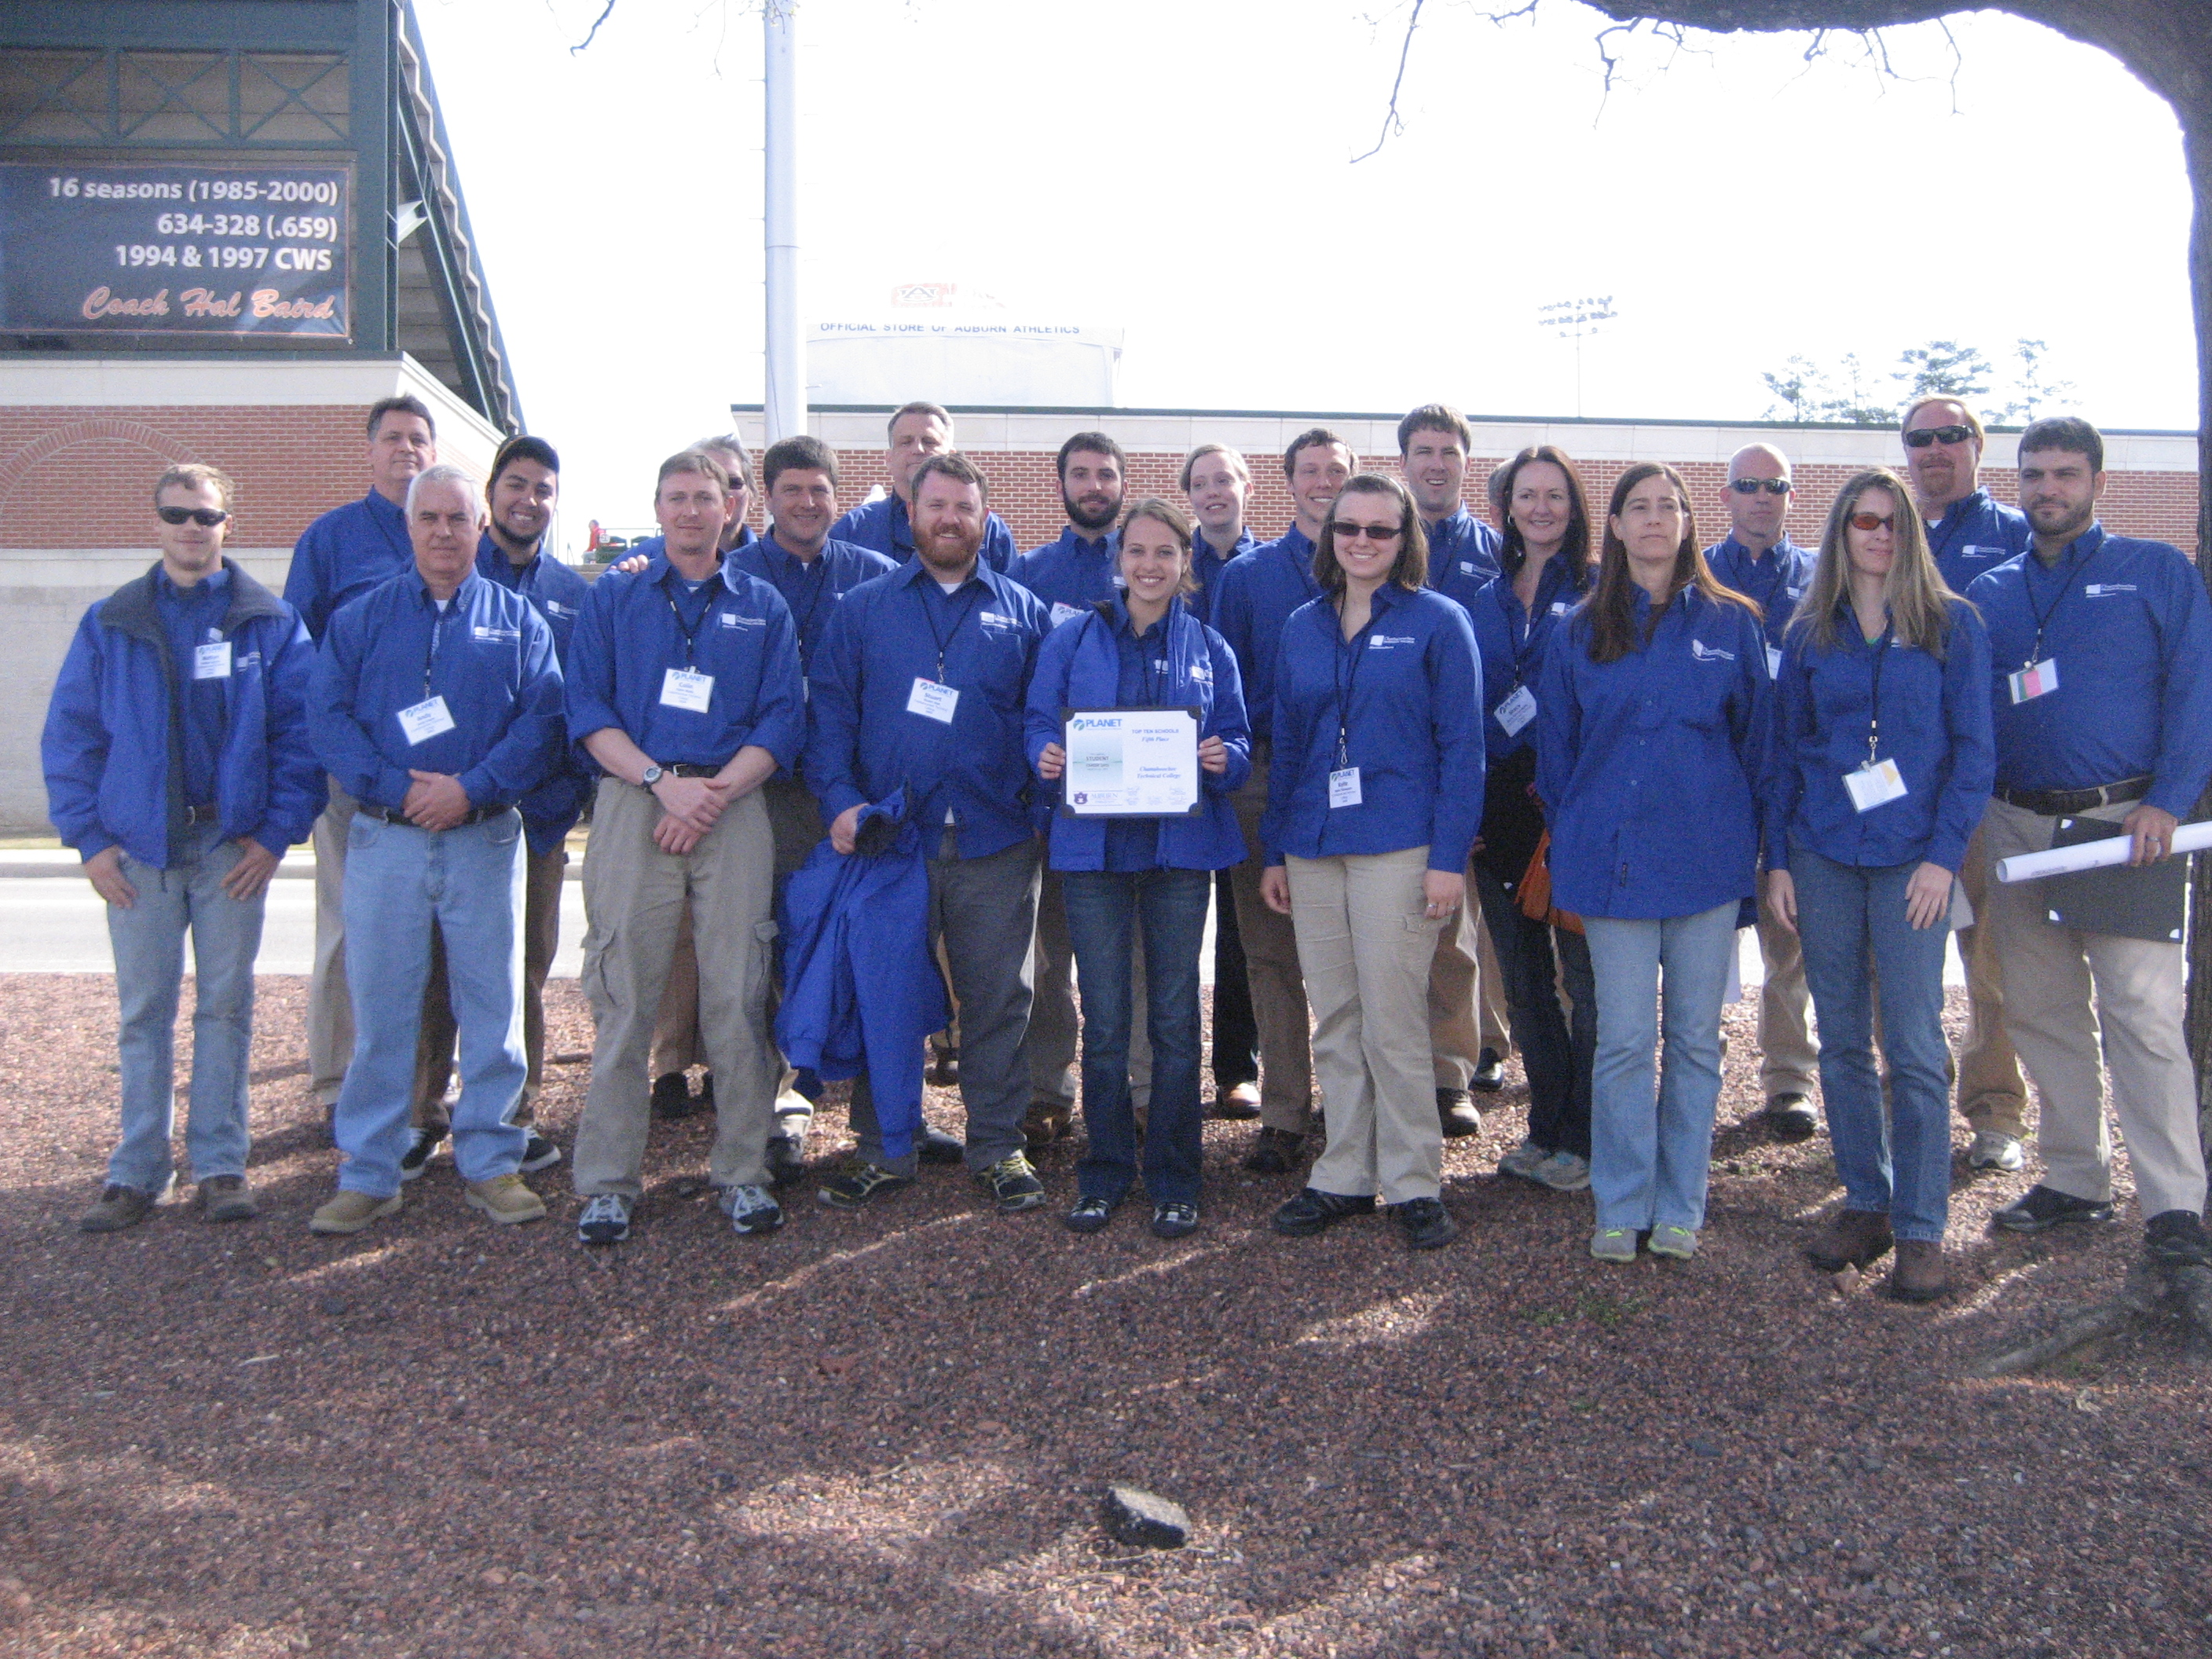 Planet 2013 Chattahoochee Tech group photo